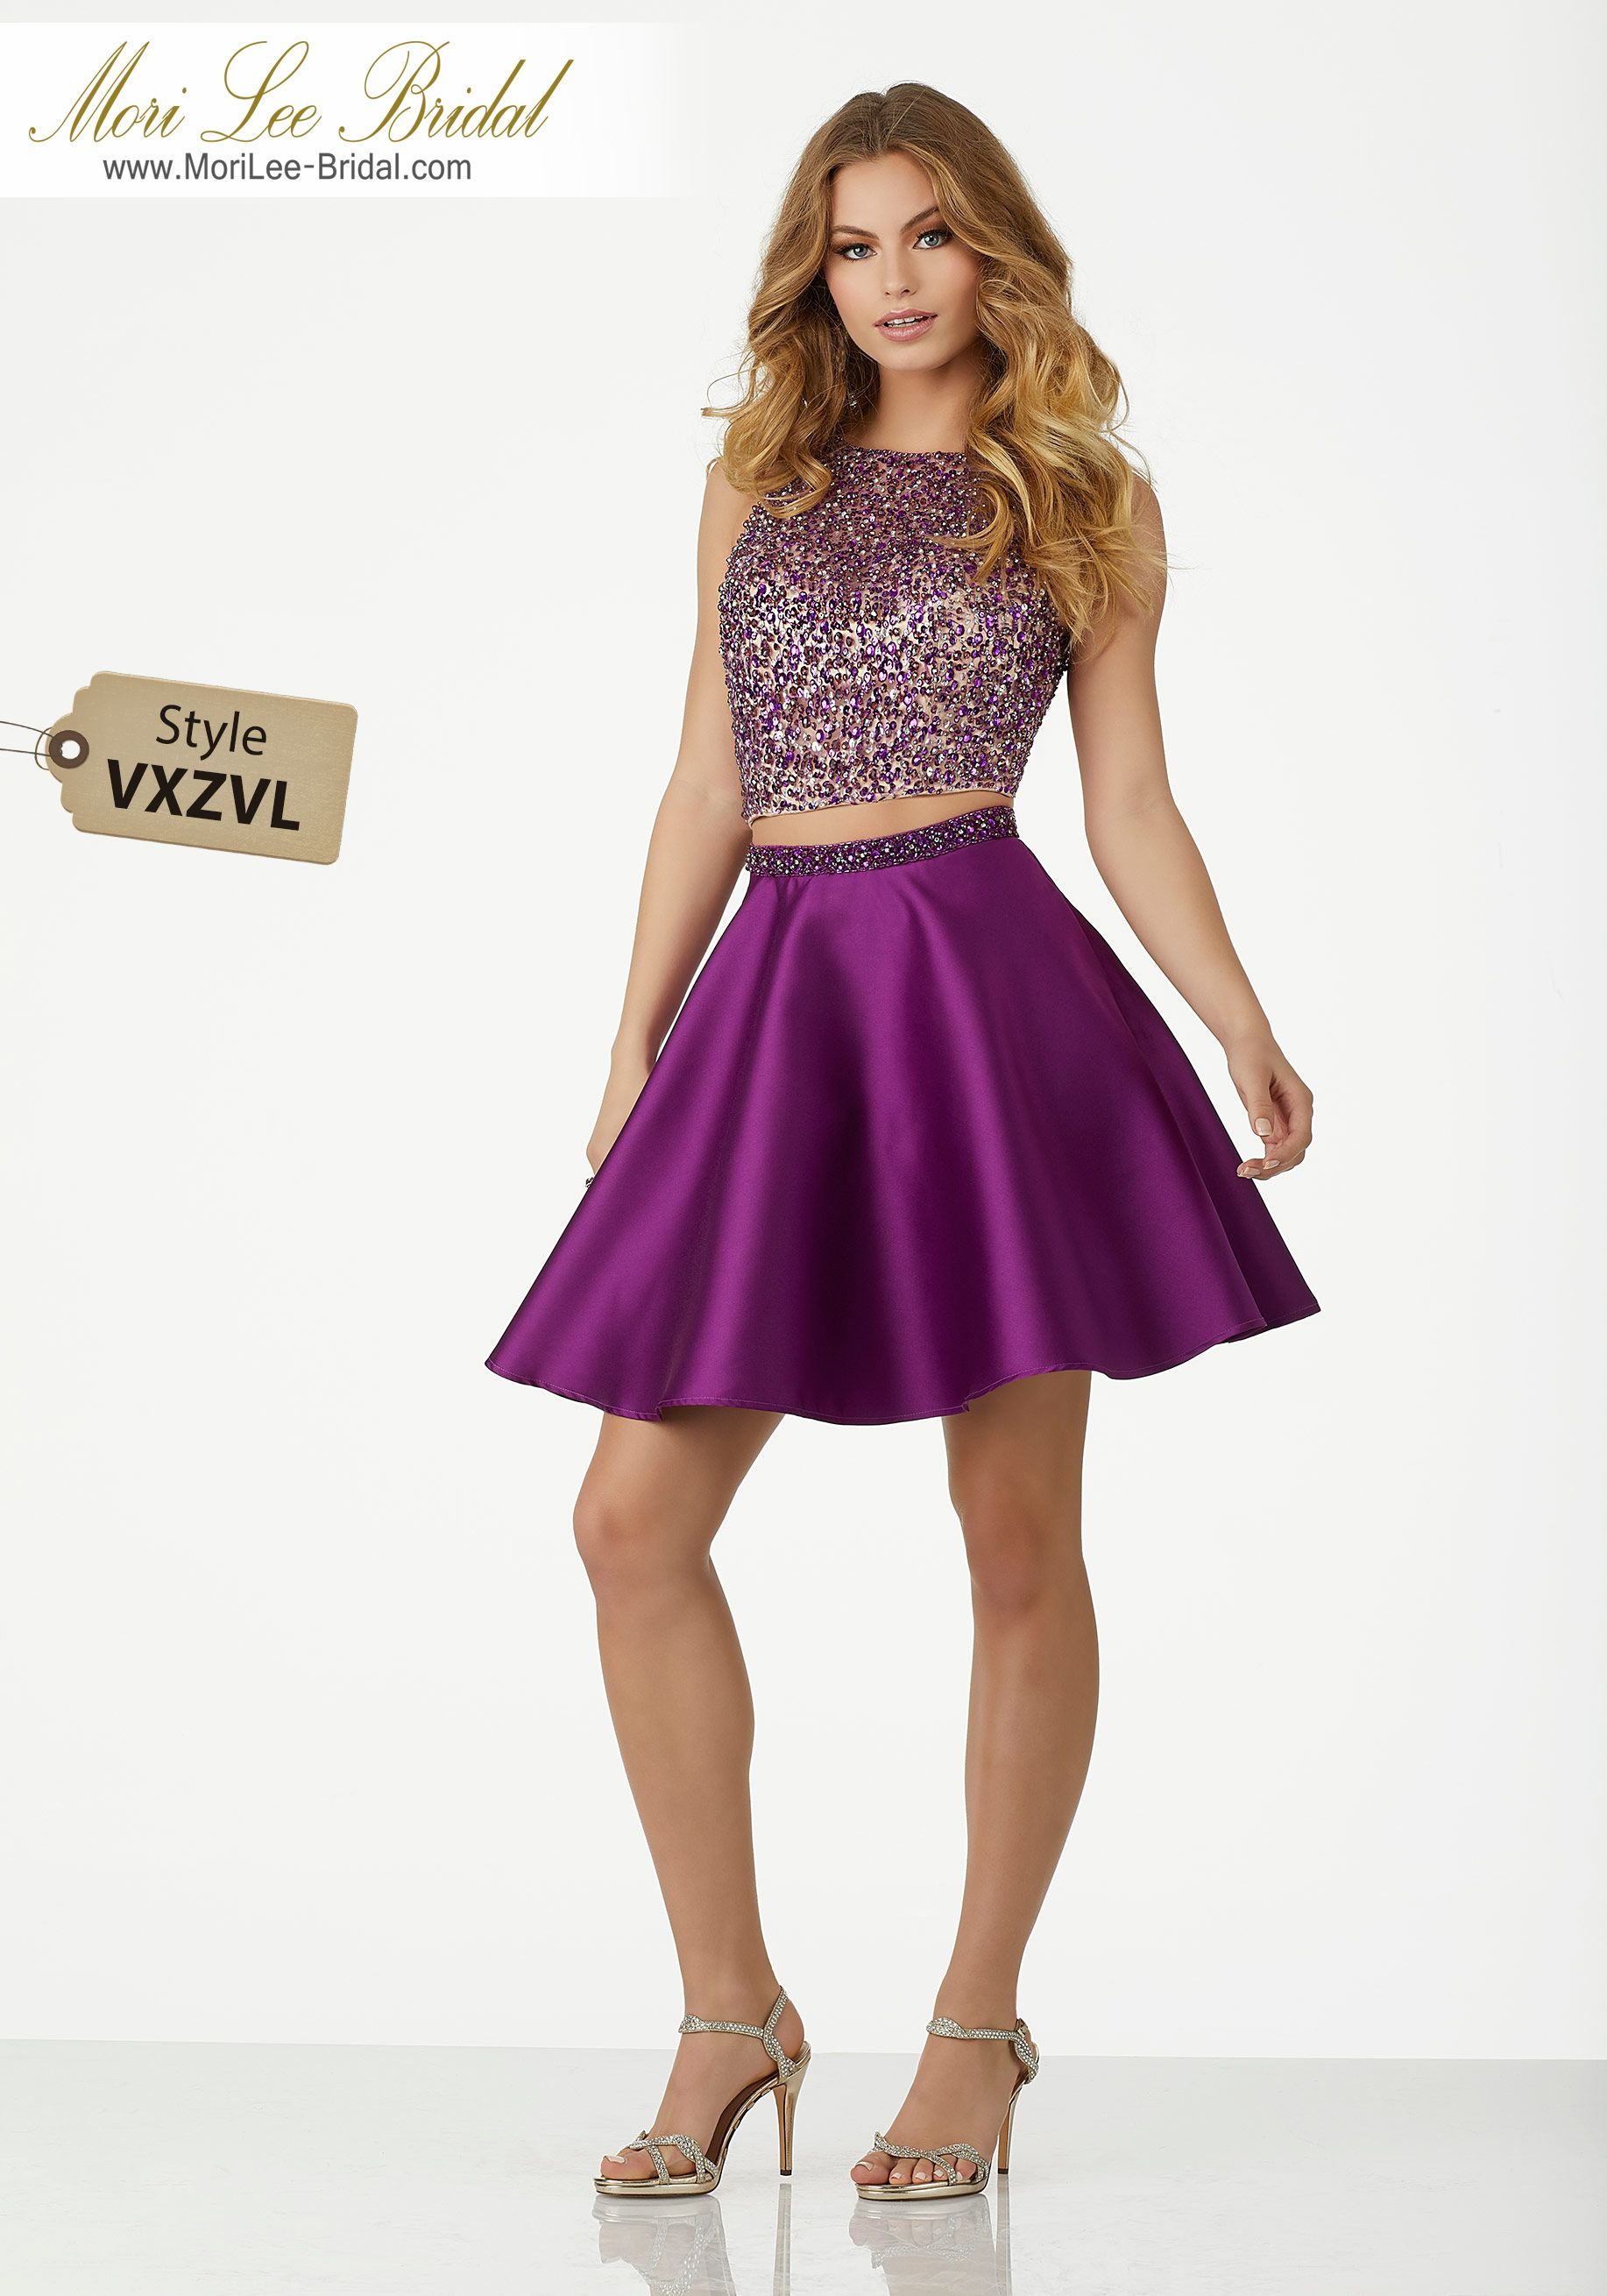 Style VXZVLTwo Piece Party Dress Featuring a Fully Beaded Net Top ...